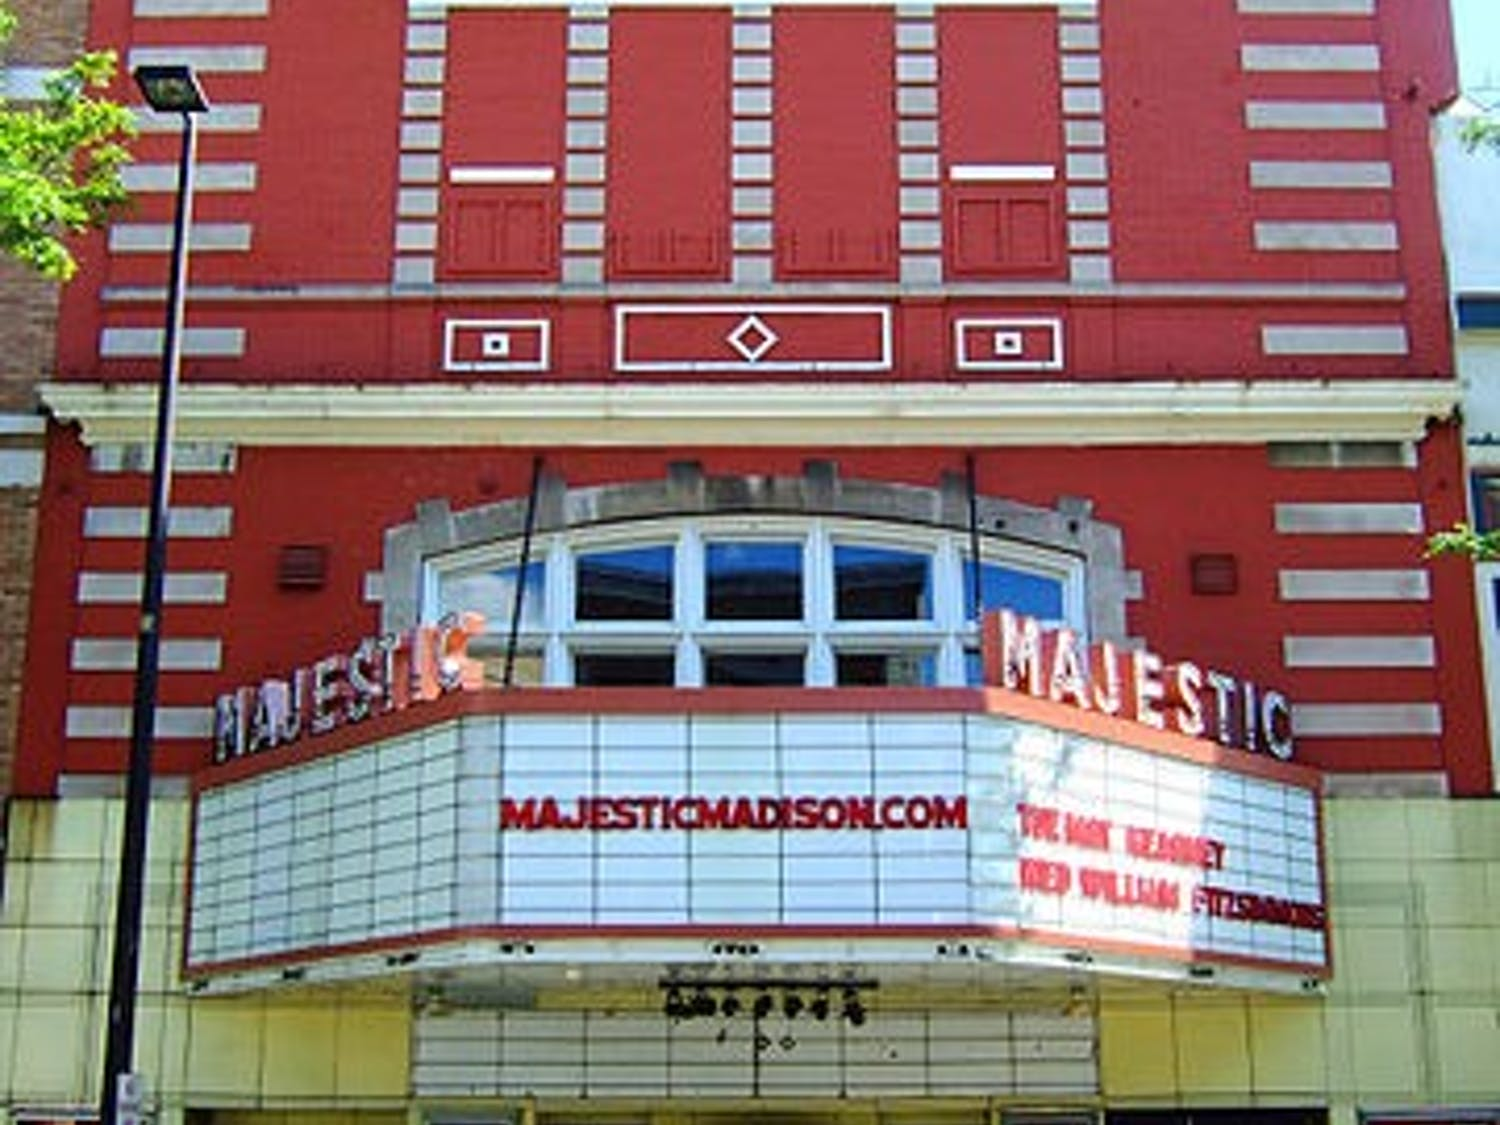 COIN made their Madison debut at the Majestic Theatre on Sunday.